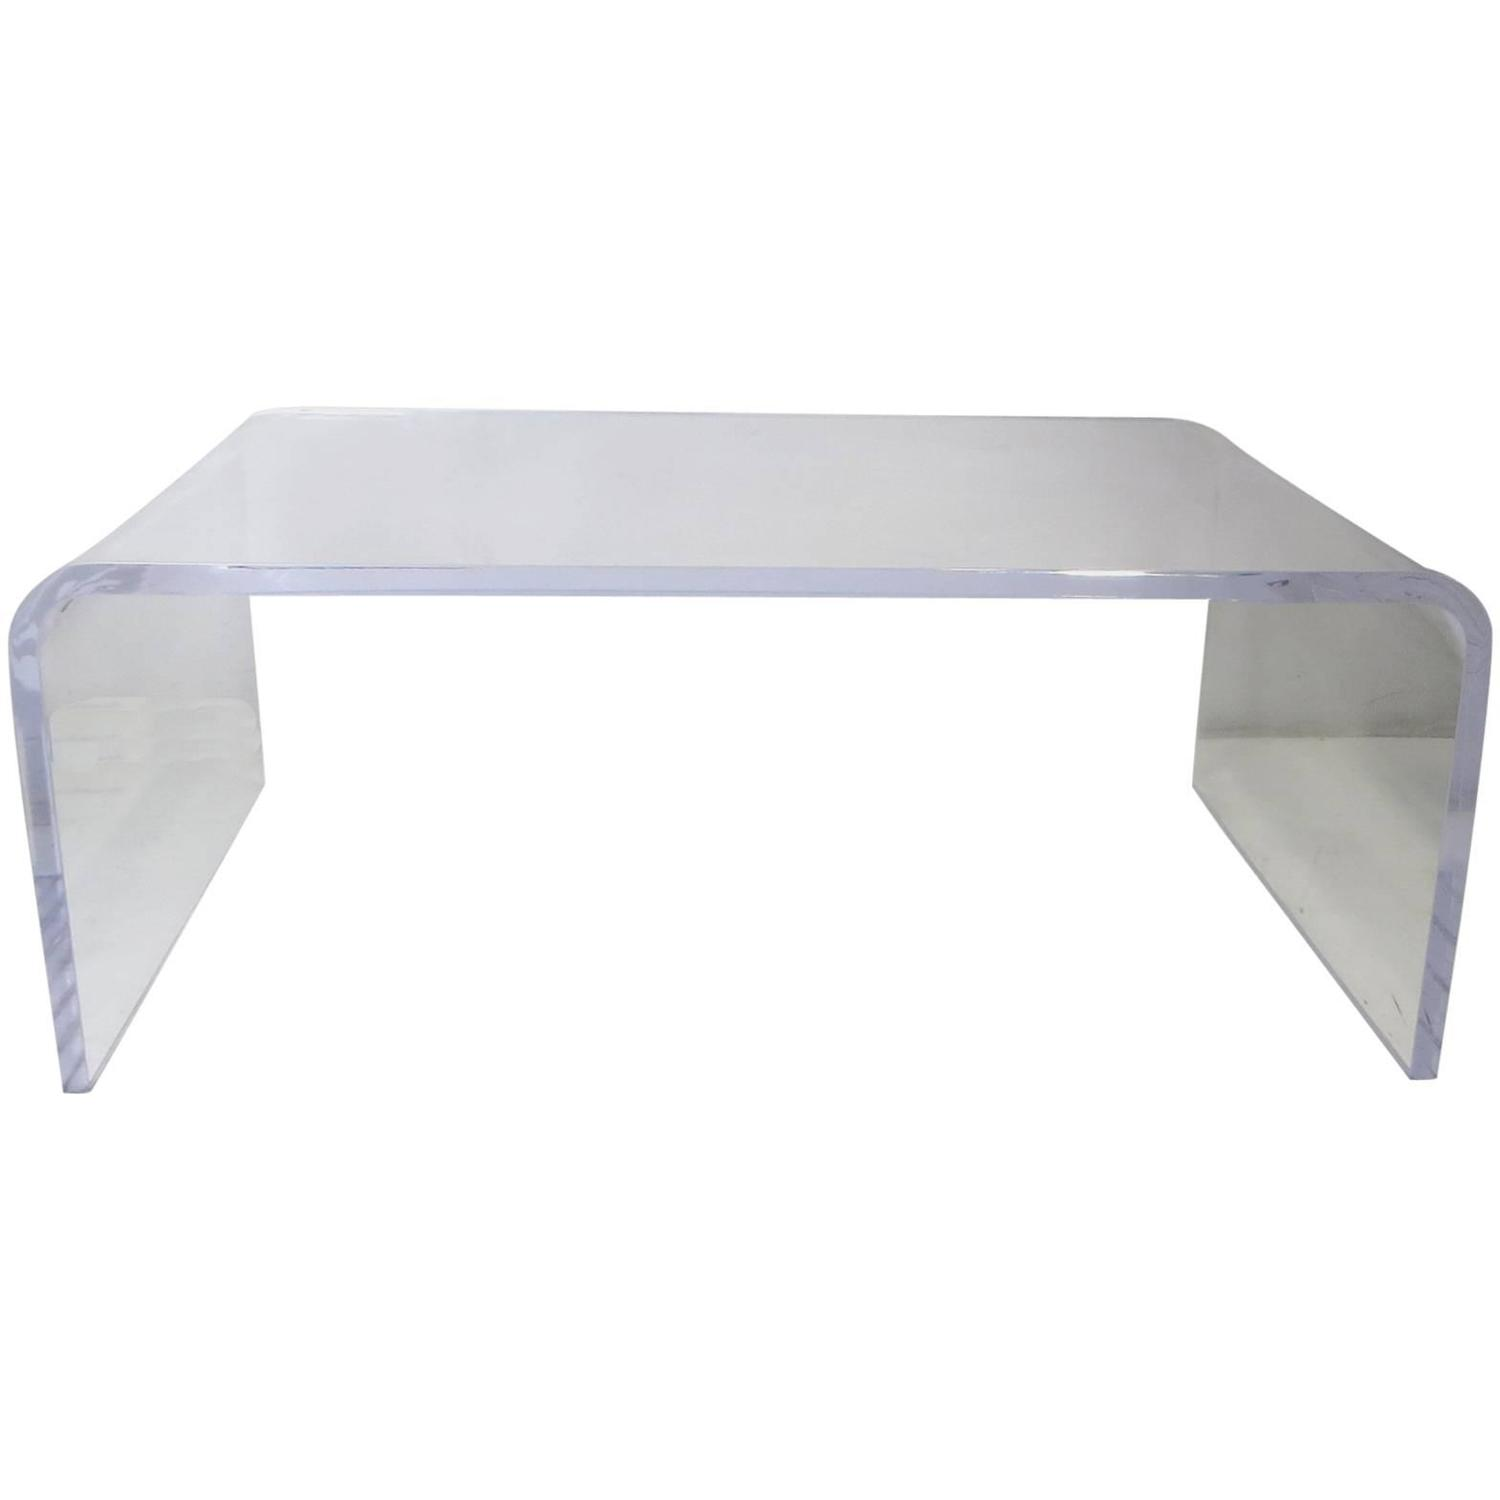 thick lucite waterfall coffee table at 1stdibs